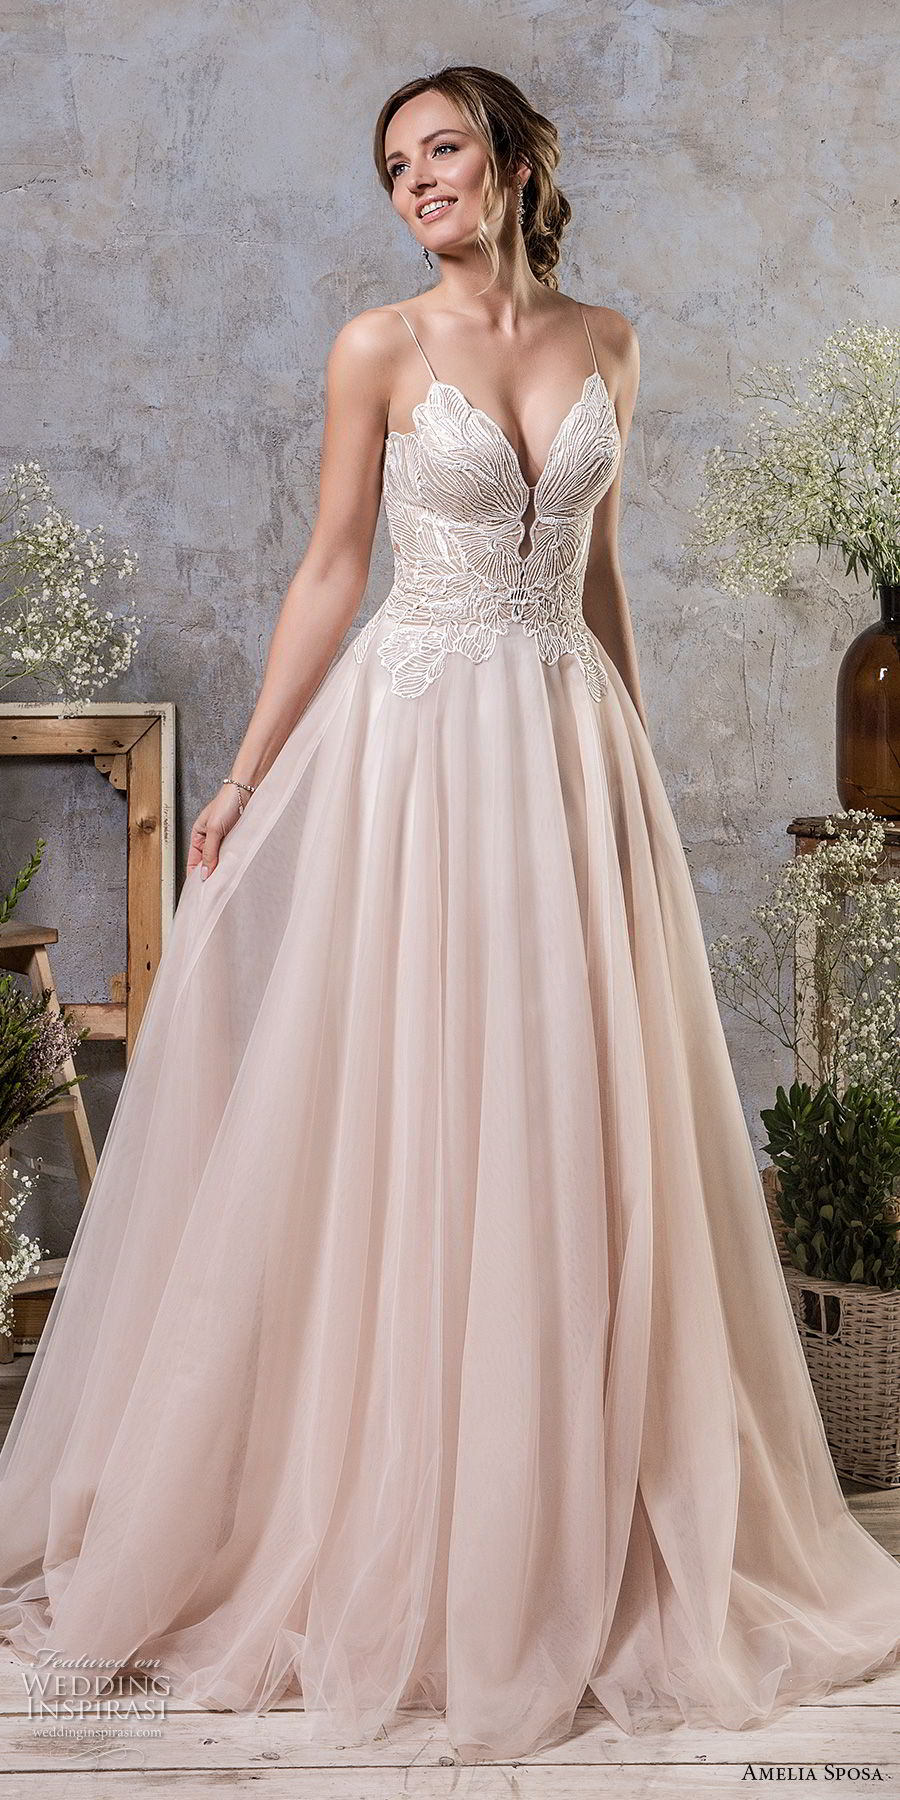 amelia sposa fall 2018 bridal spaghetti strap deep sweetheart neckline heavily embellished bodice romantic blush a line wedding dress corset back chapel train (15) mv